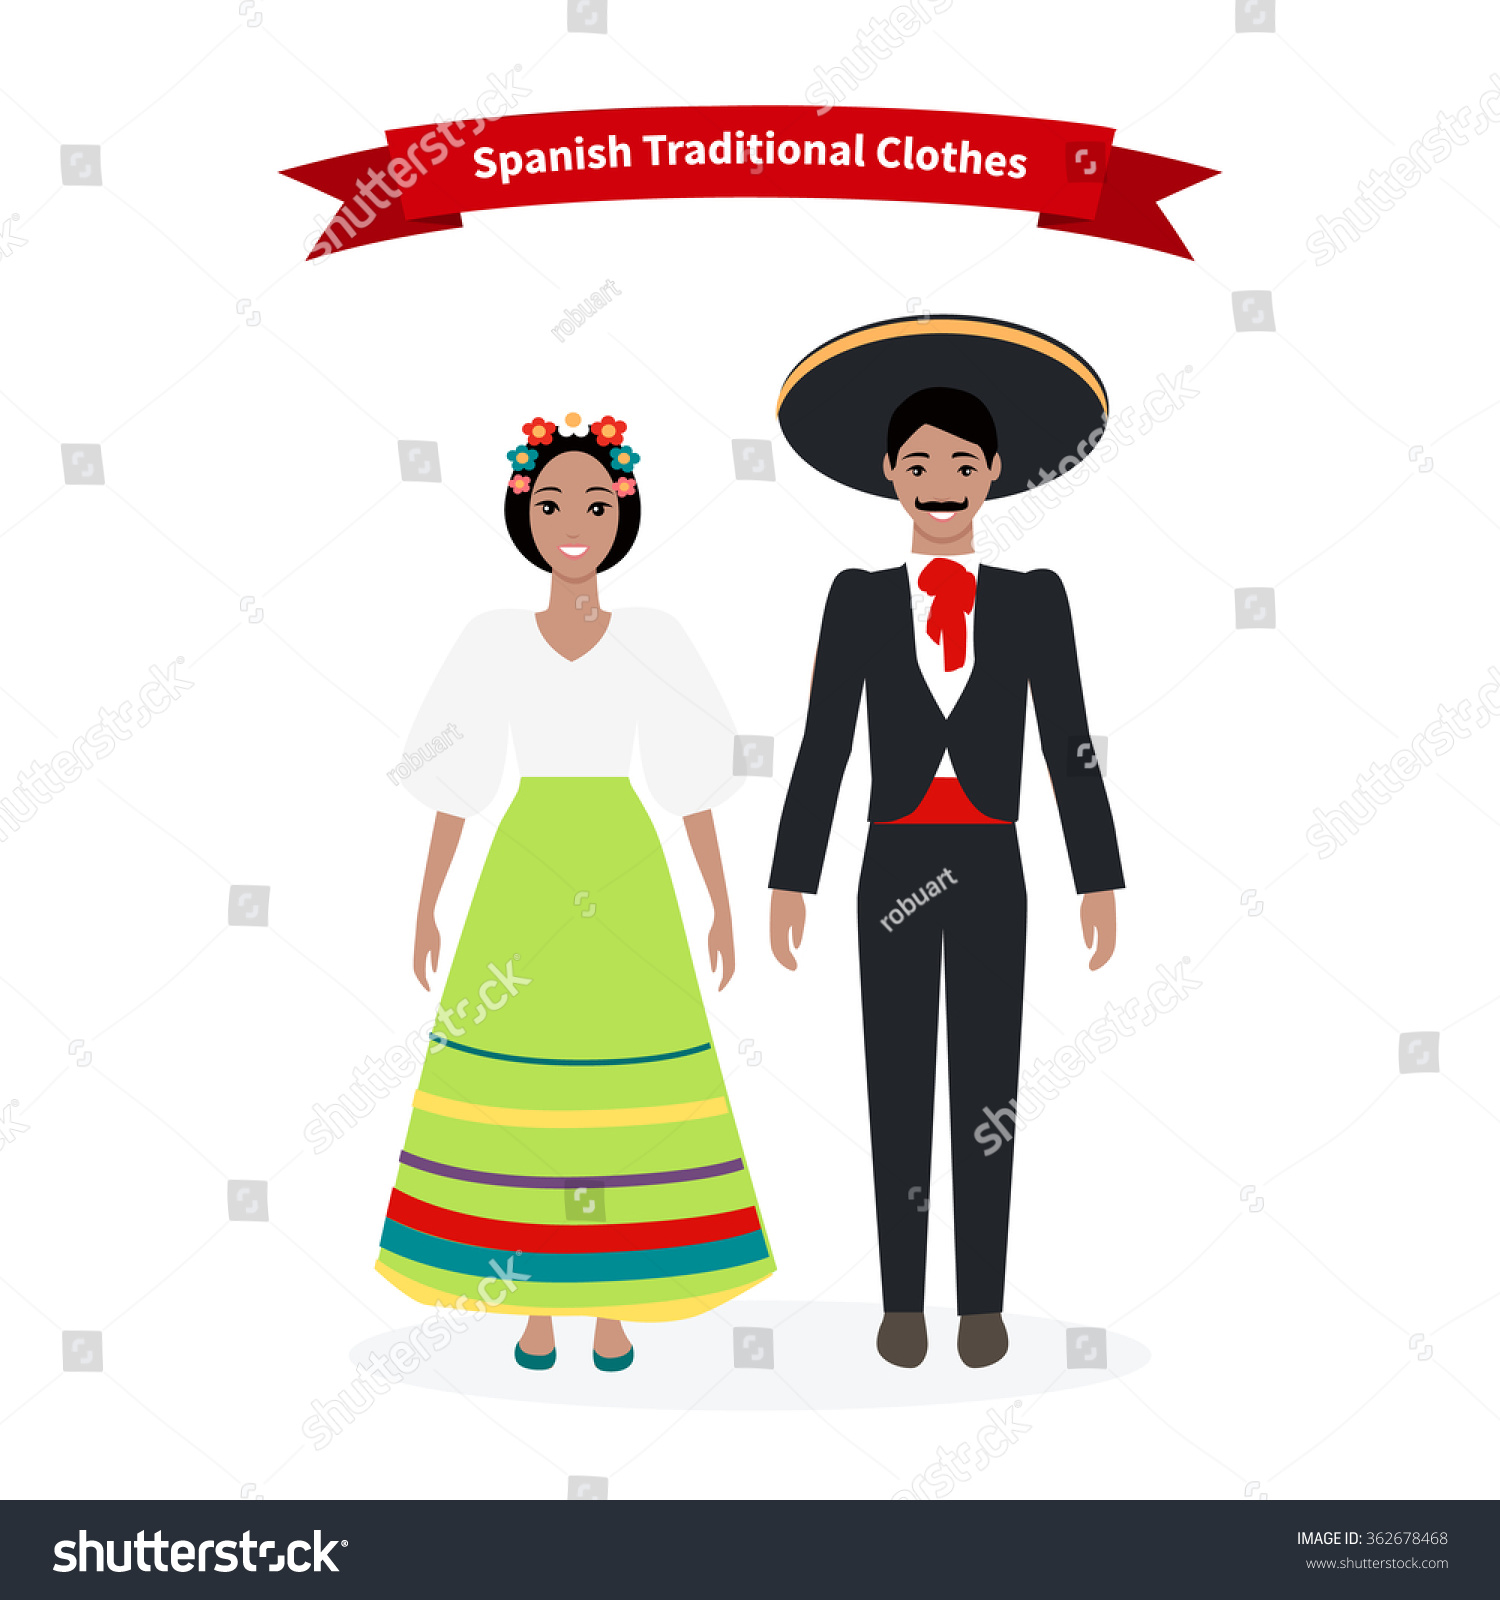 vest spanish girl personals Meet married bbws today if you have the hots for big girls that are shine so show them what you got and set up an account on our married bbw personals today.